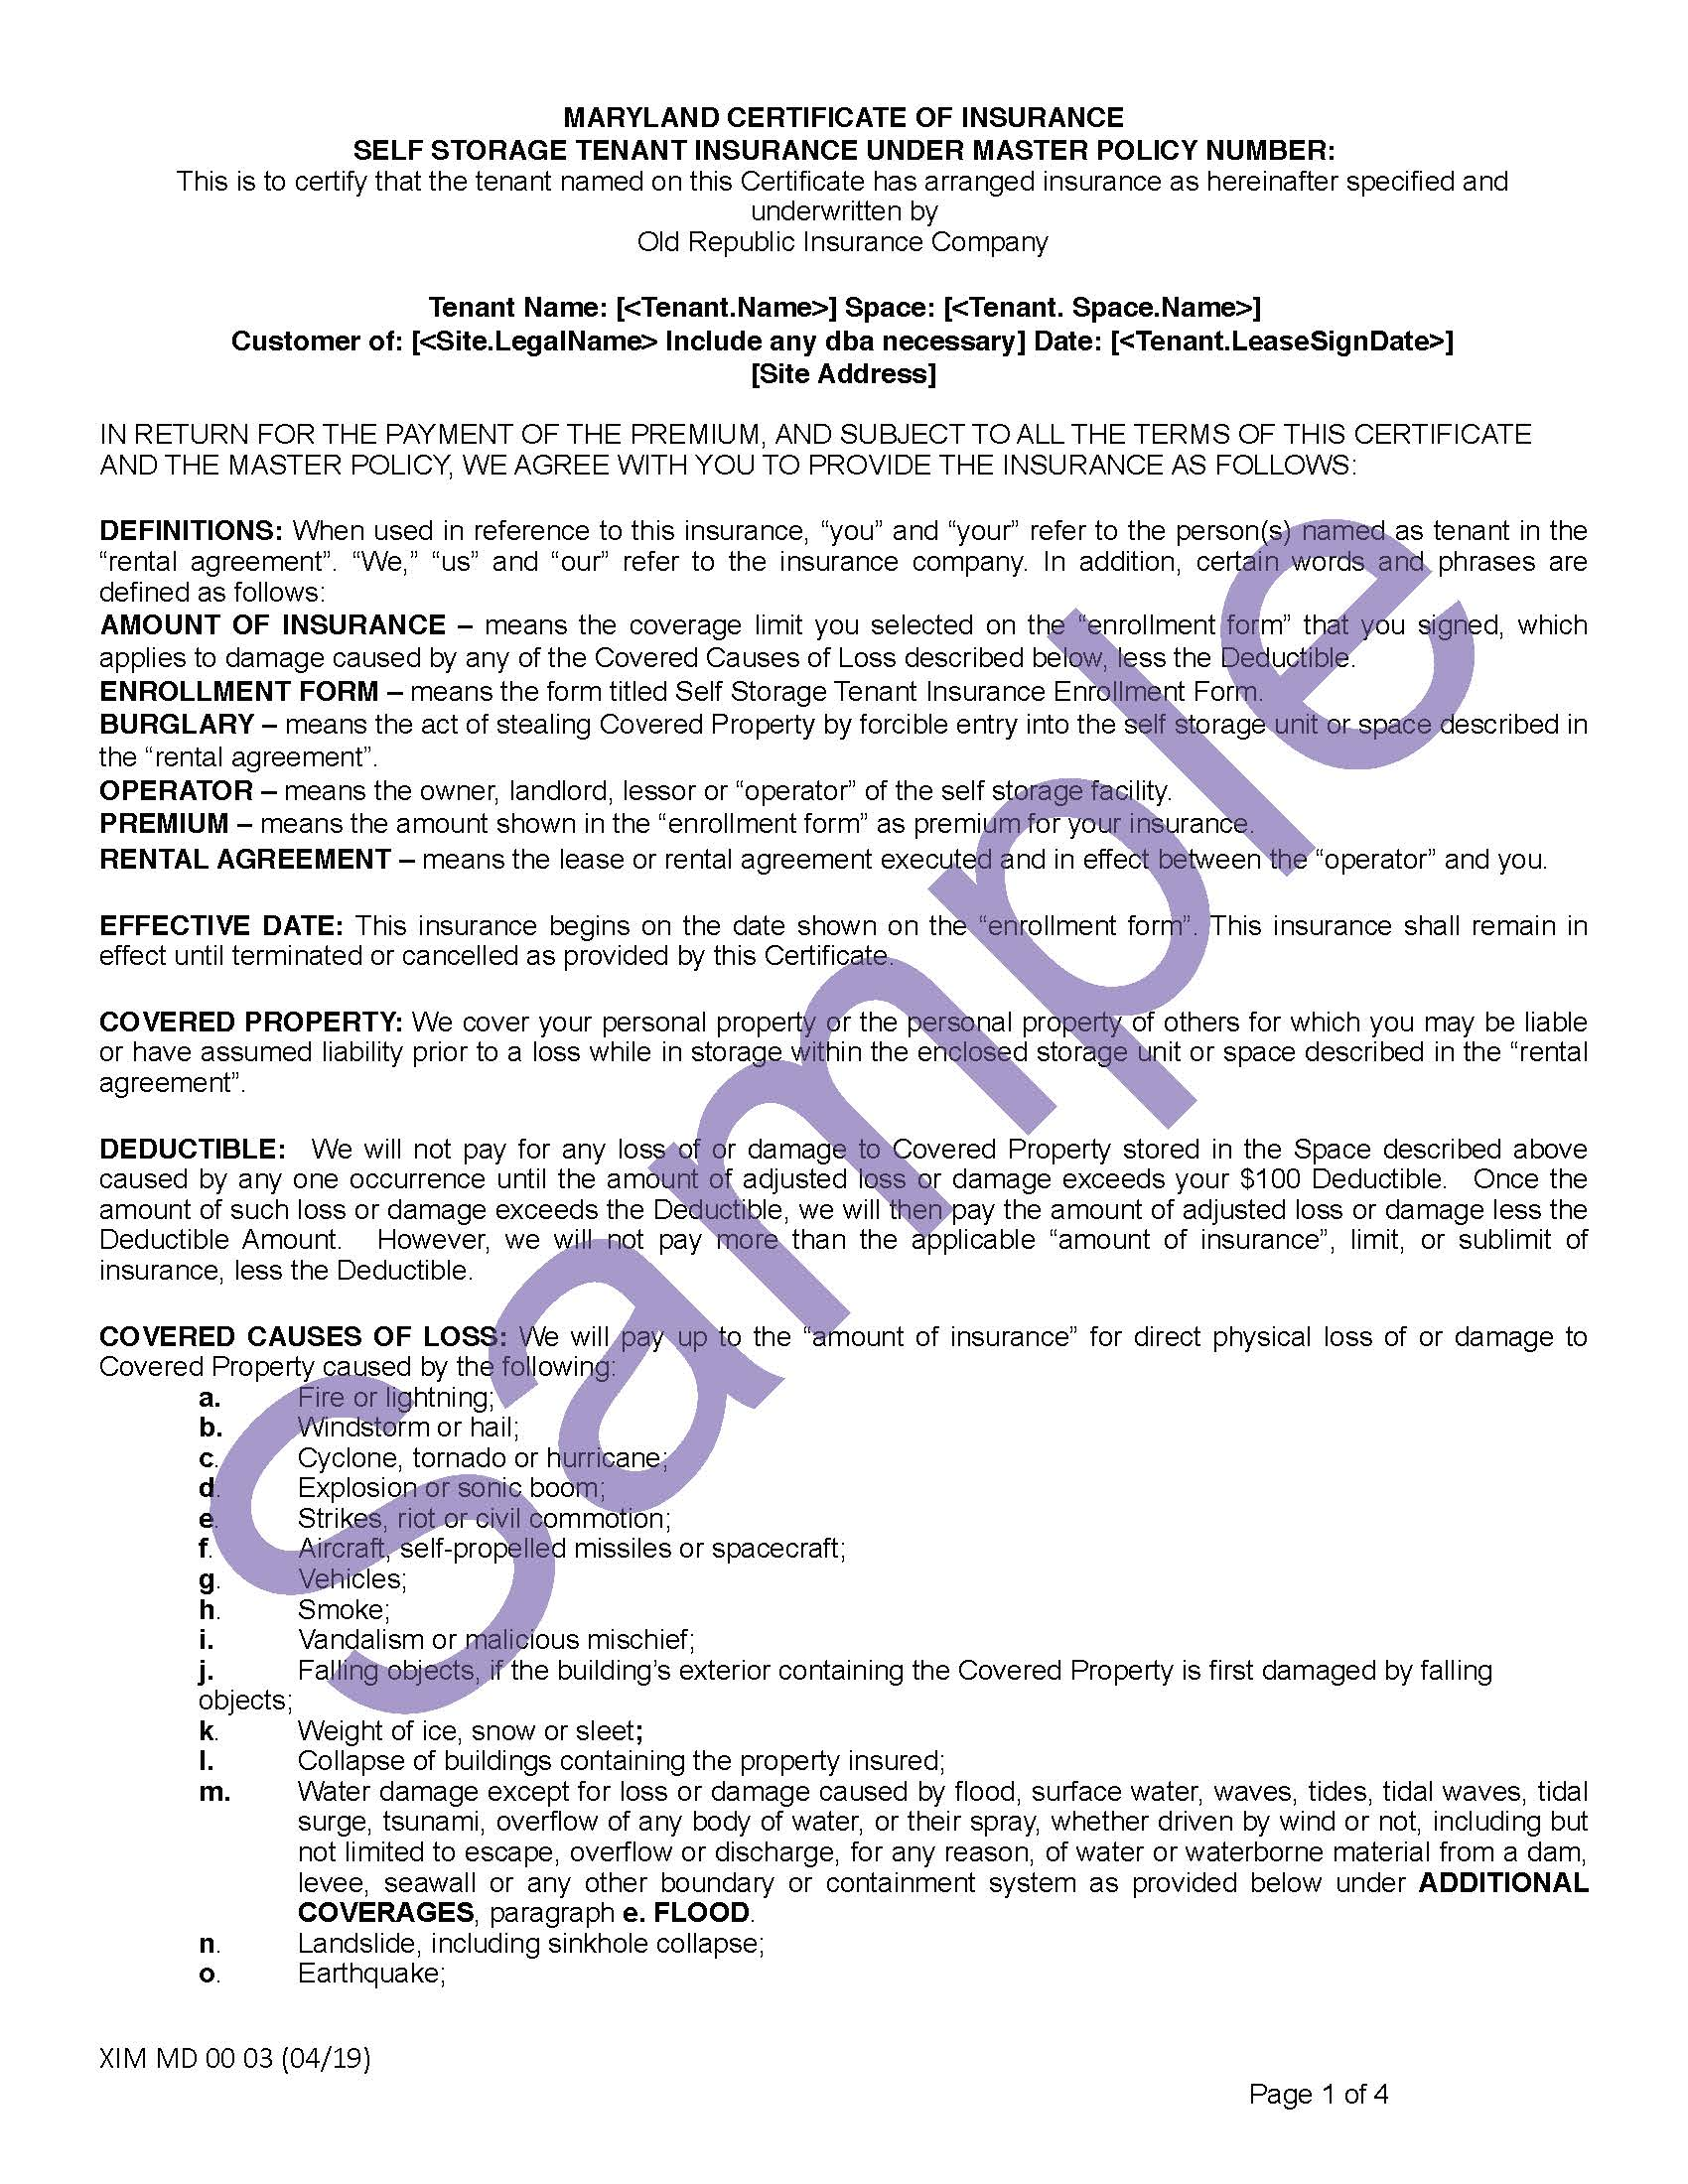 XIM MD 00 03 04 19 Maryland Certificate of InsuranceSample_Page_1.jpg